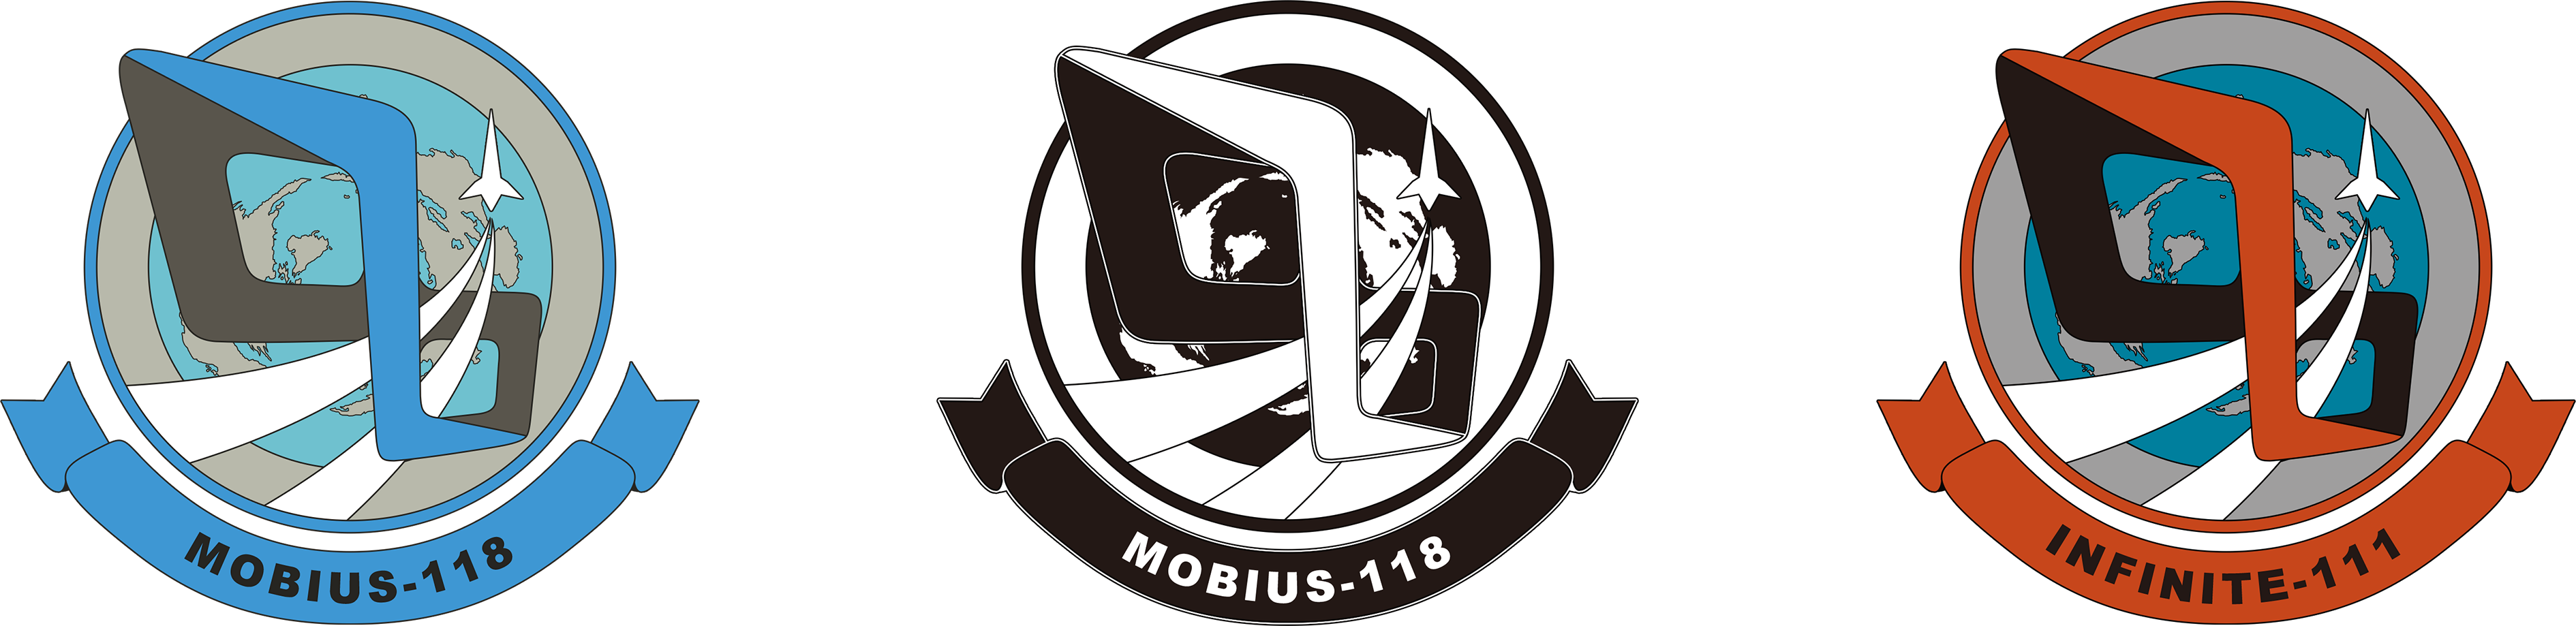 Ace combat clipart picture royalty free library Ace Combat 4 - Mobius / Infinite Squadron Emblem by ... picture royalty free library